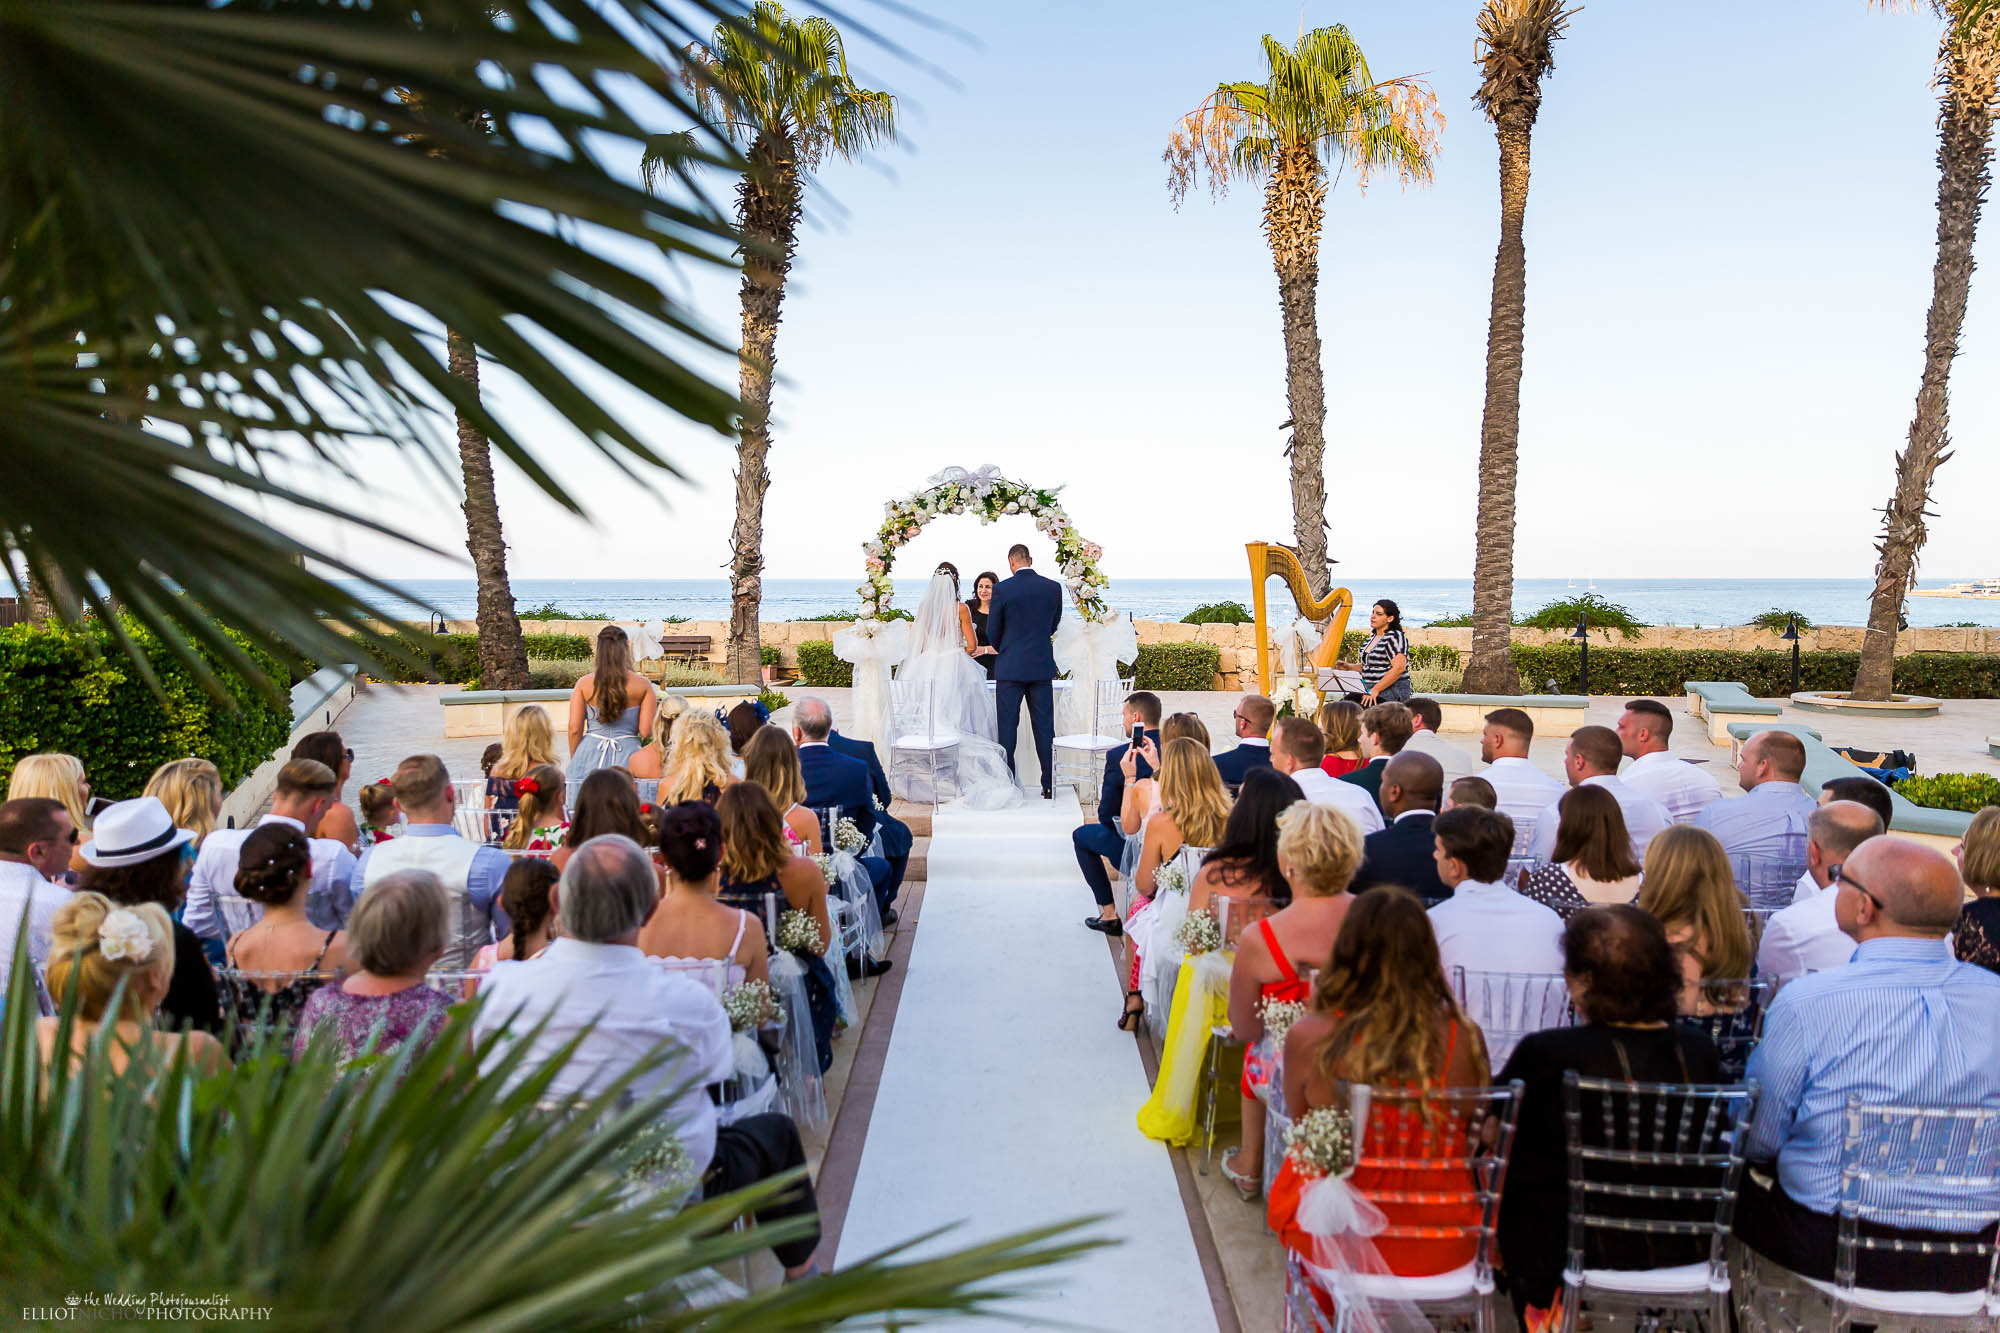 Perfect destination wedding under the palm trees and over looking the blue sea. Blue wedding dress wedding.